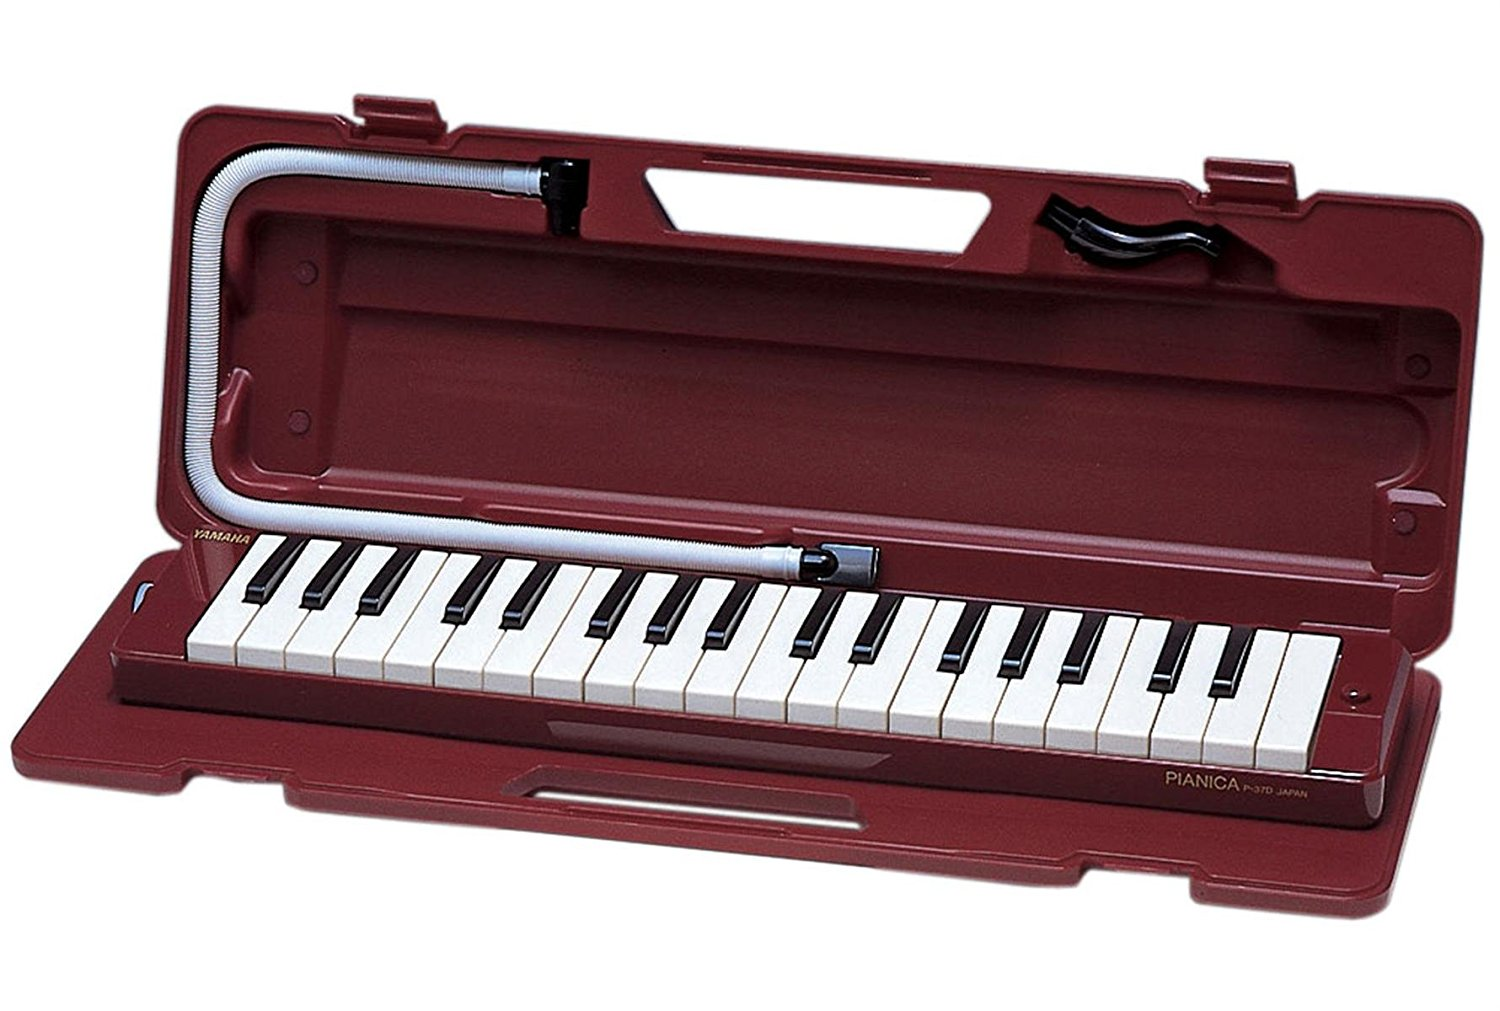 (ea)YAMAHA PIANICA 37 KEY